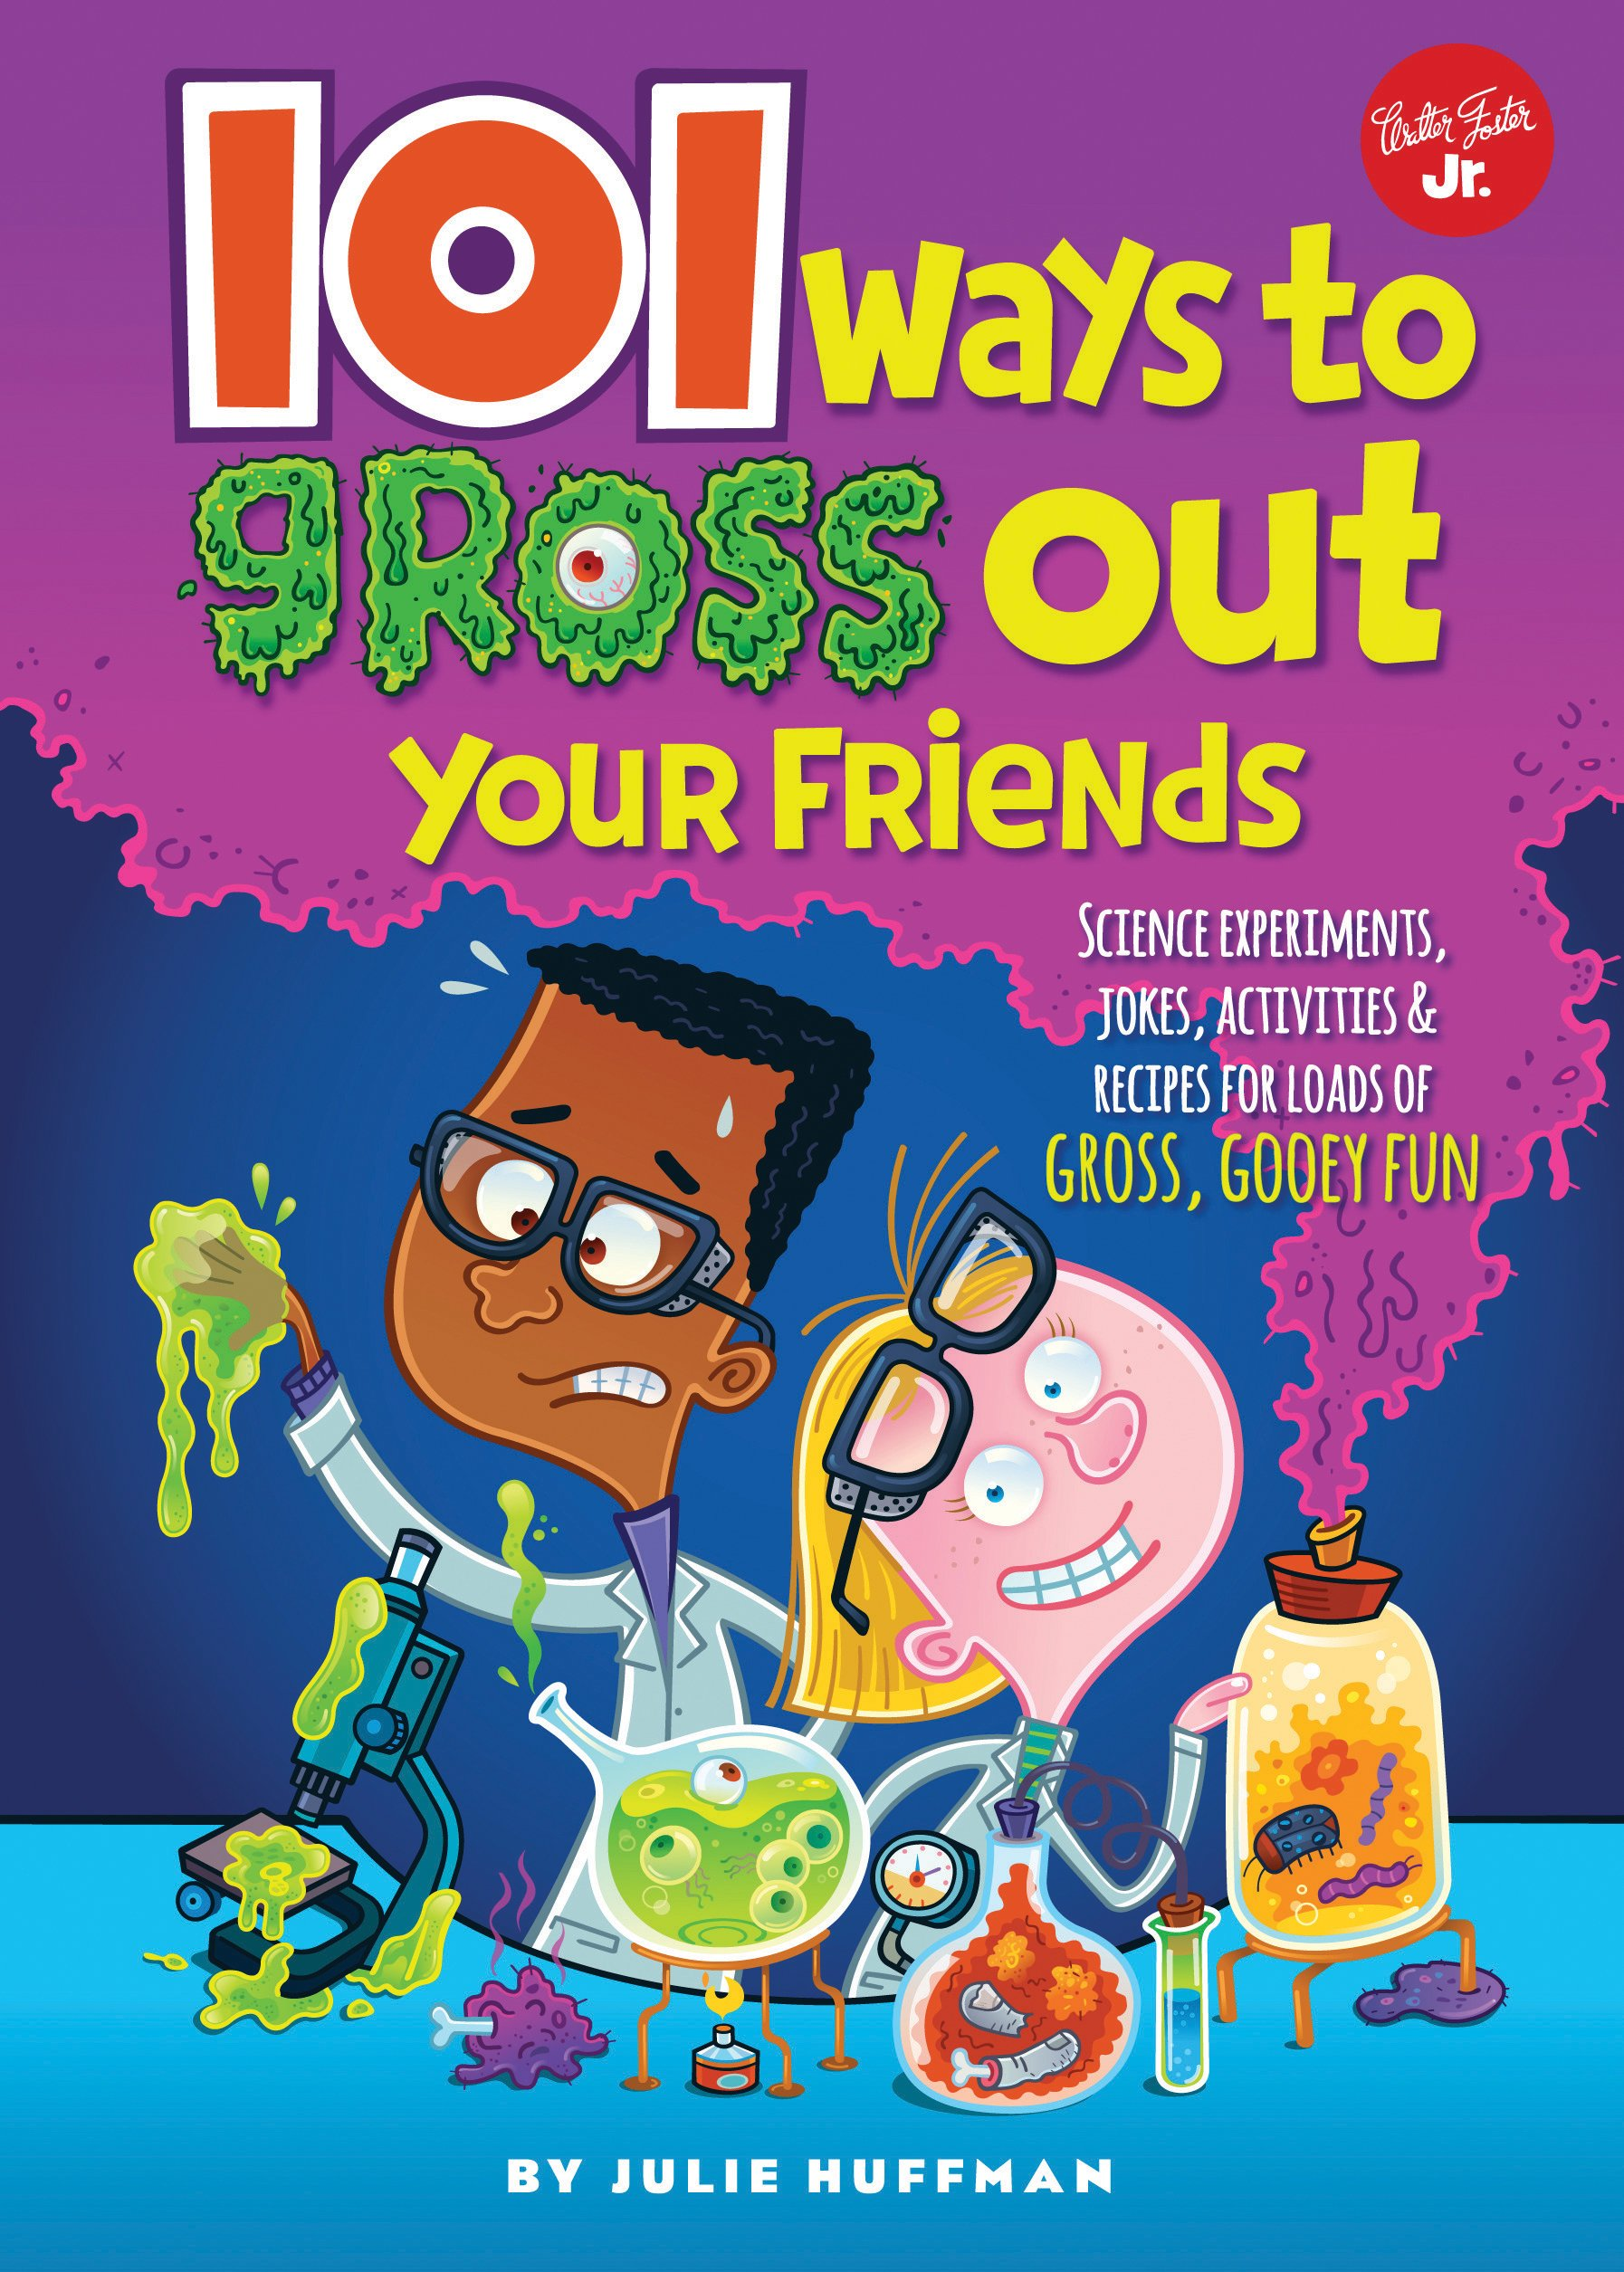 101 Ways to Gross Out Your Friends: Science experiments, jokes, activities & recipes for loads of gross, gooey fun (101 Things)